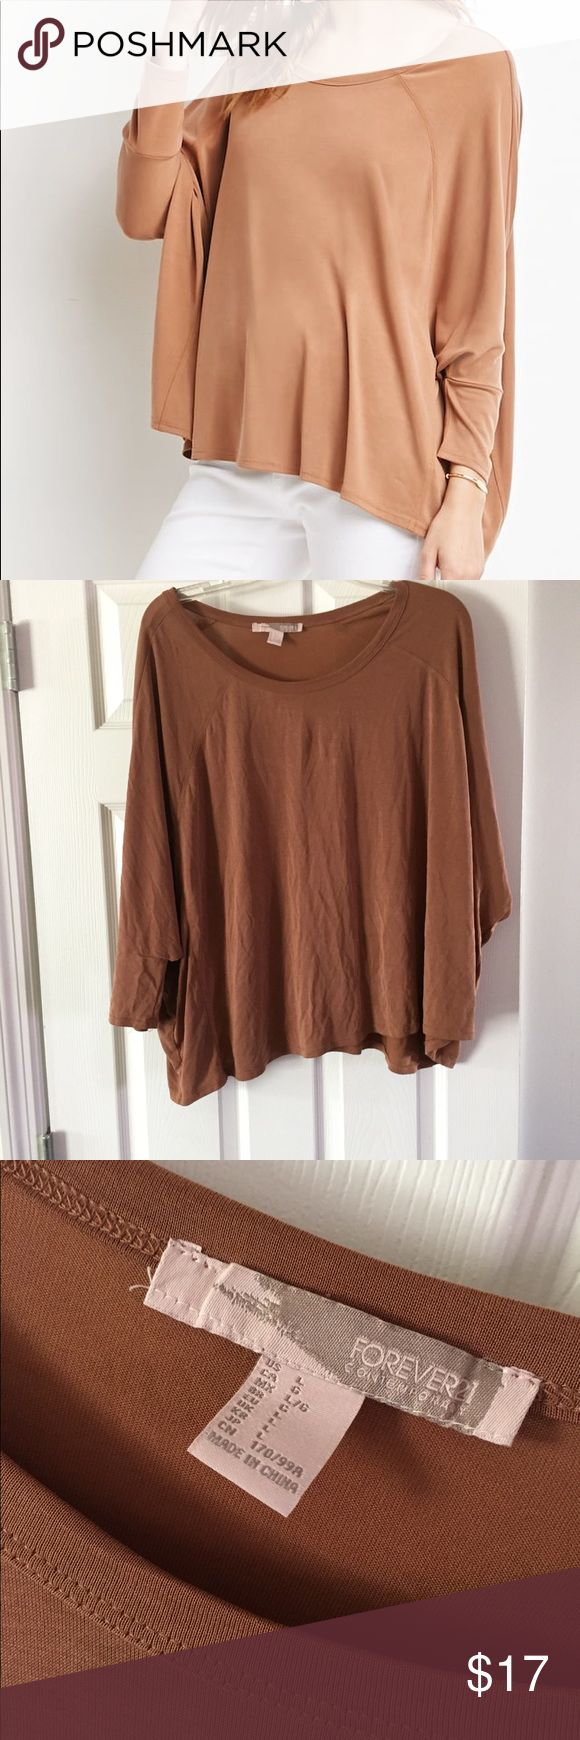 Batwing dolman women's Top blouse wide sleeve New. Boatneck dolman Sleeve Top in camel with 3/4 Sleeve. Forever 21 Tops Blouses